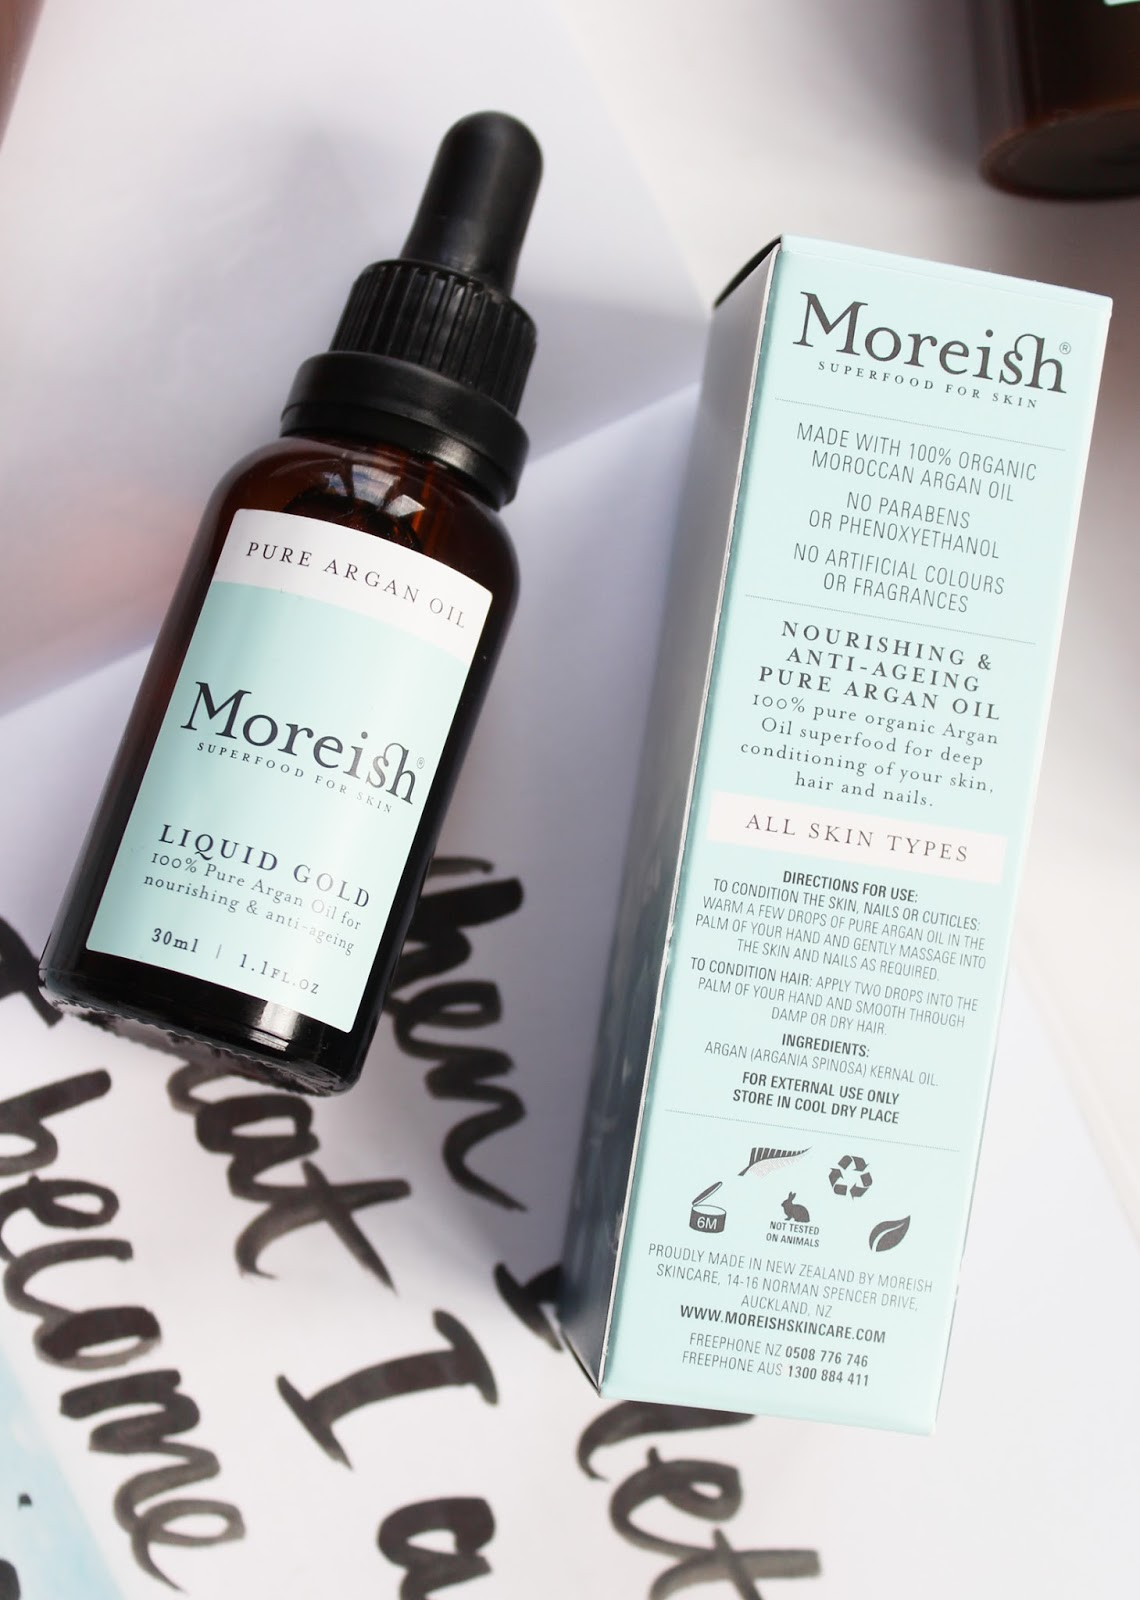 MOREISH SKINCARE | Foaming Cleanser, Day Cream + Argan Oil - Review - CassandraMyee